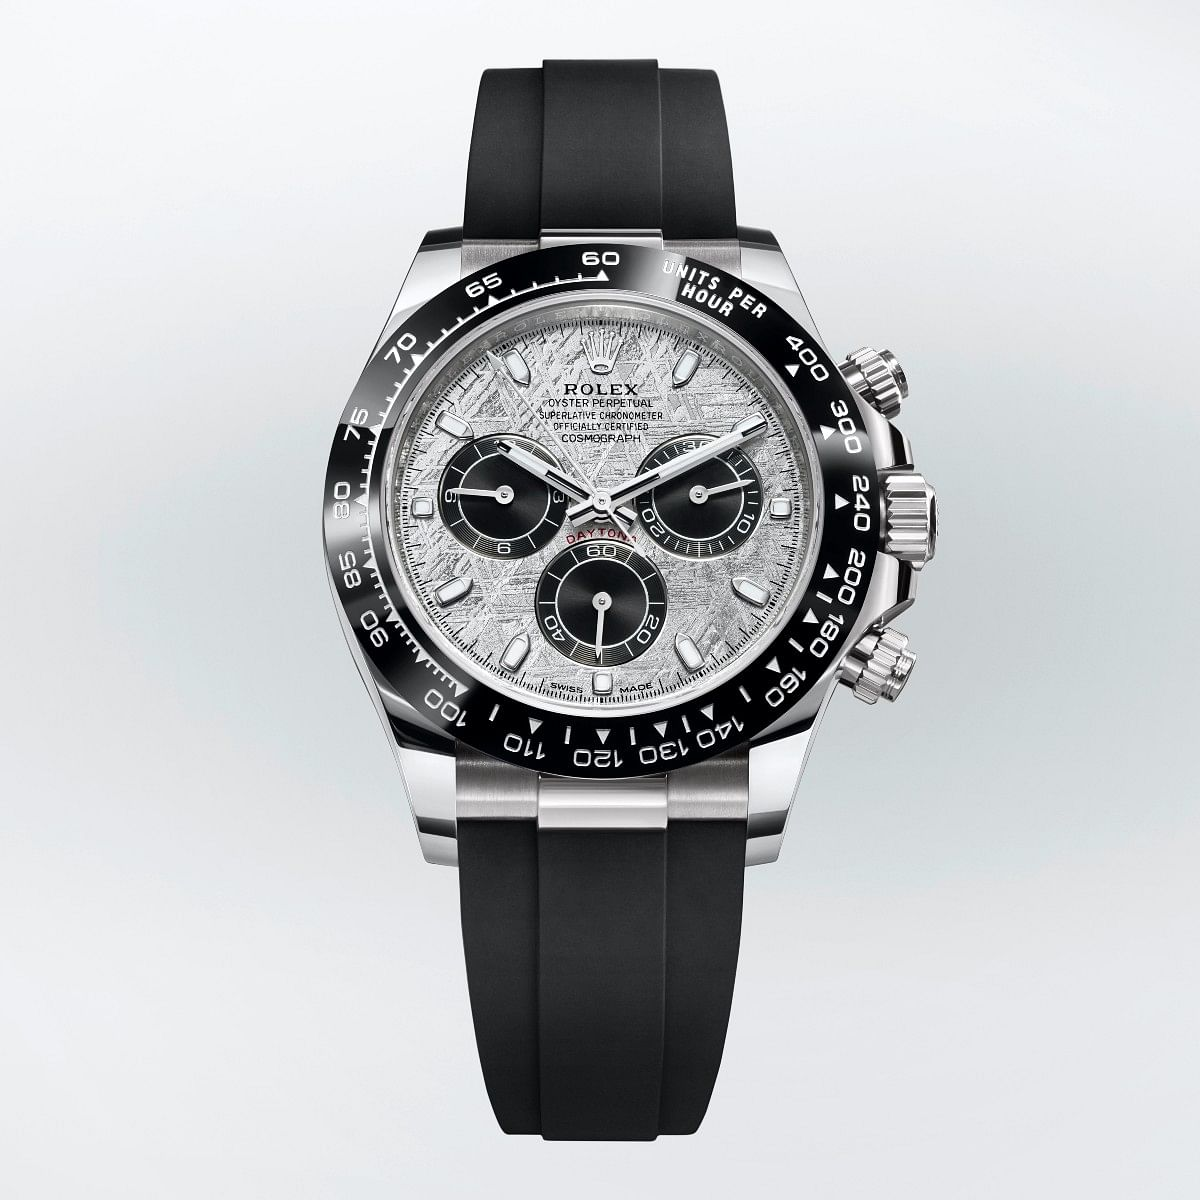 2021 Rolex Oyster Perpetual Cosmograph Daytona in white gold